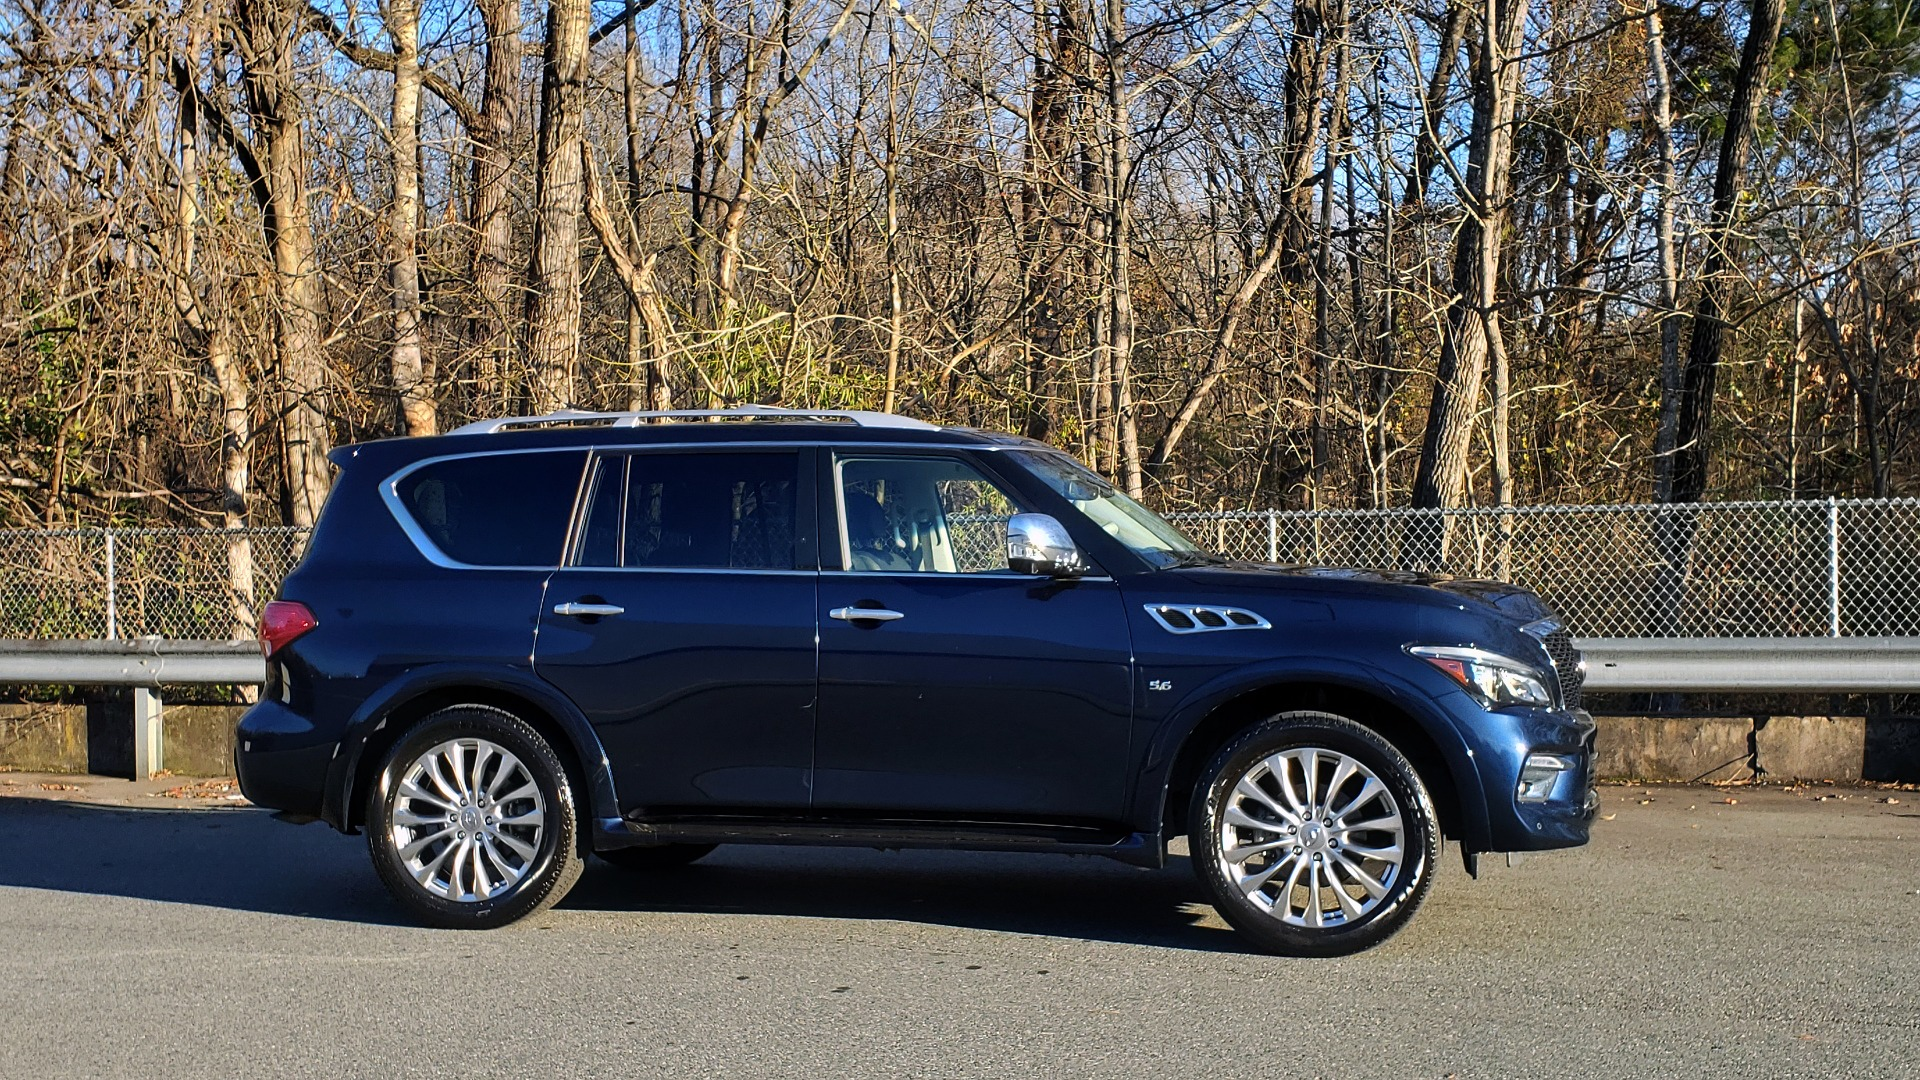 Used 2017 INFINITI QX80 4WD / NAV / SUNROOF / 3-ROW / THEATER PKG / REARVIEW for sale $46,495 at Formula Imports in Charlotte NC 28227 6